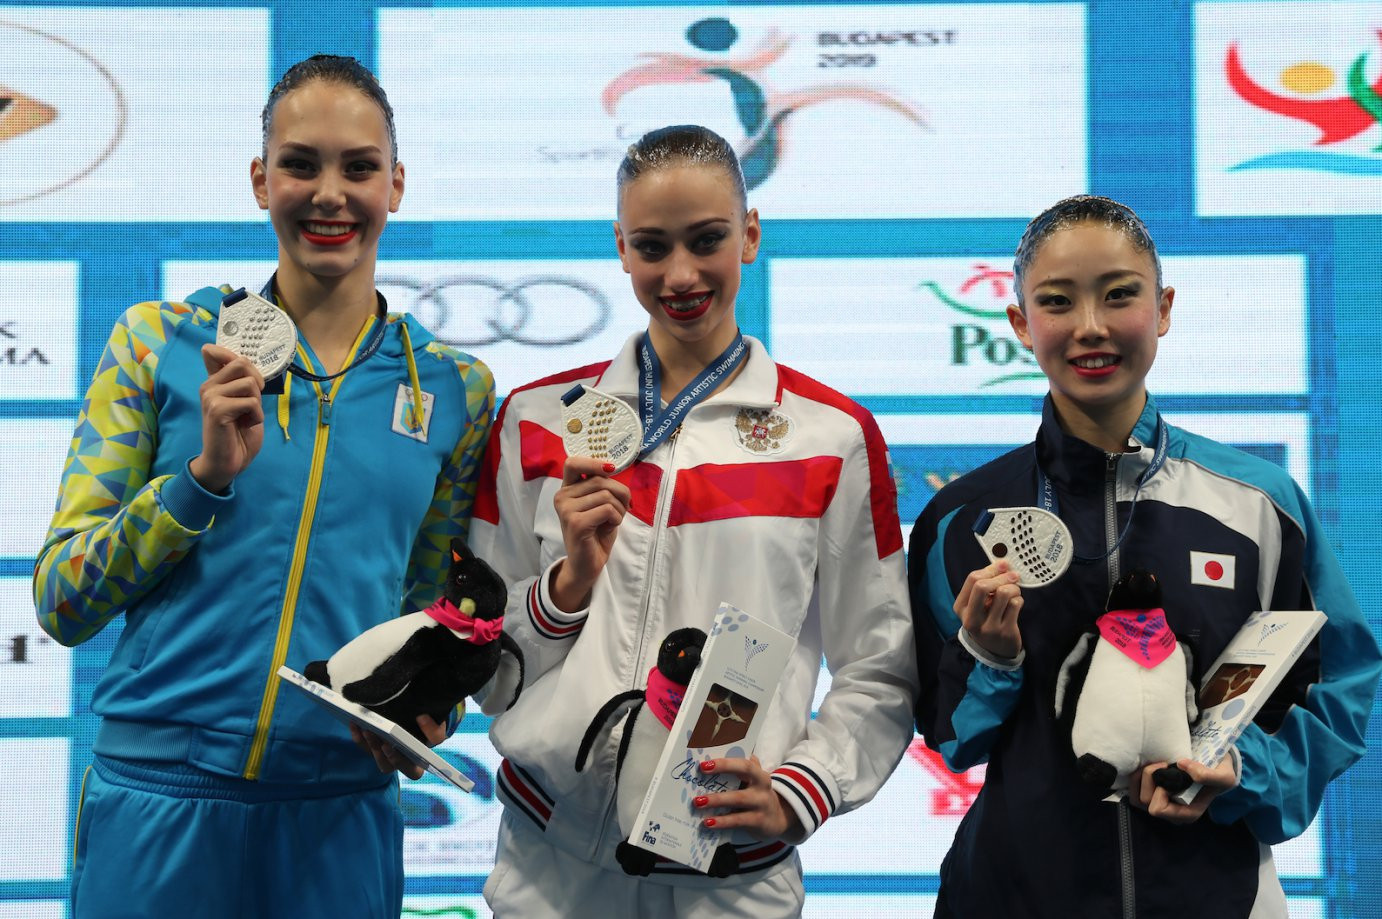 Russia's Varvara Subbotina, centre, won both golds on offer at the championships yesterday ©FINA